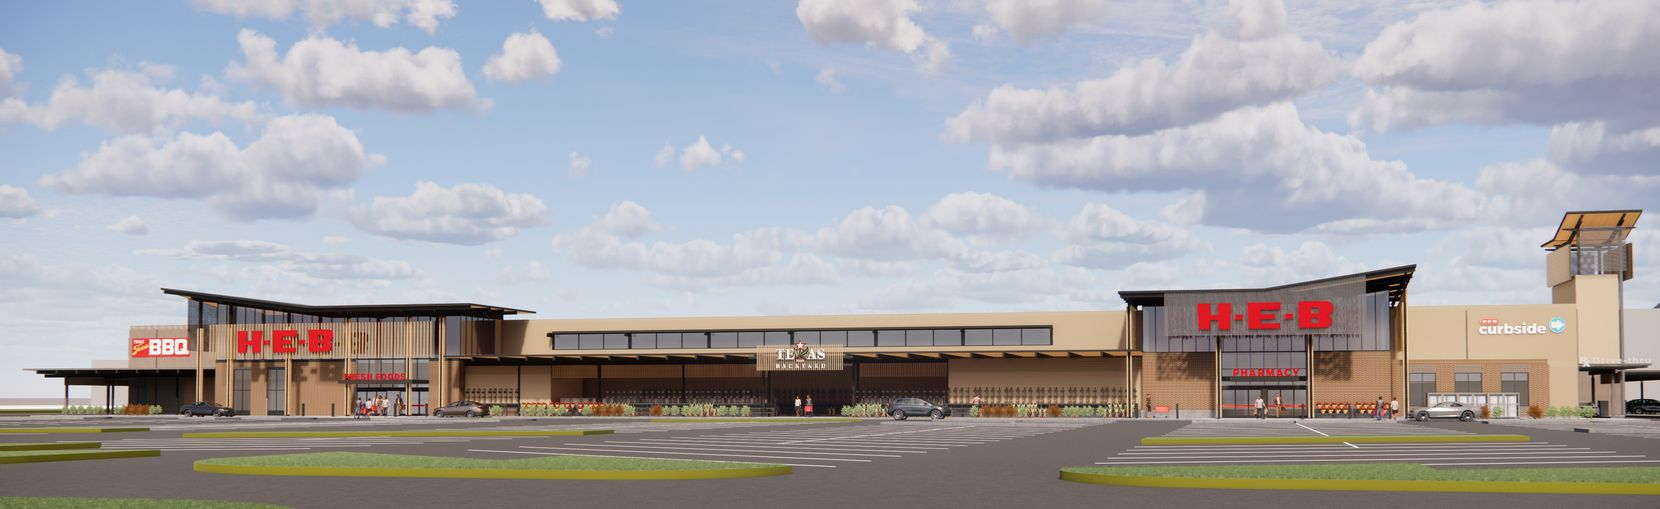 Rendering of the H-E-B store in Frisco that's scheduled to open in fall 2022 on the northeast corner of Legacy Drive and Main Street.